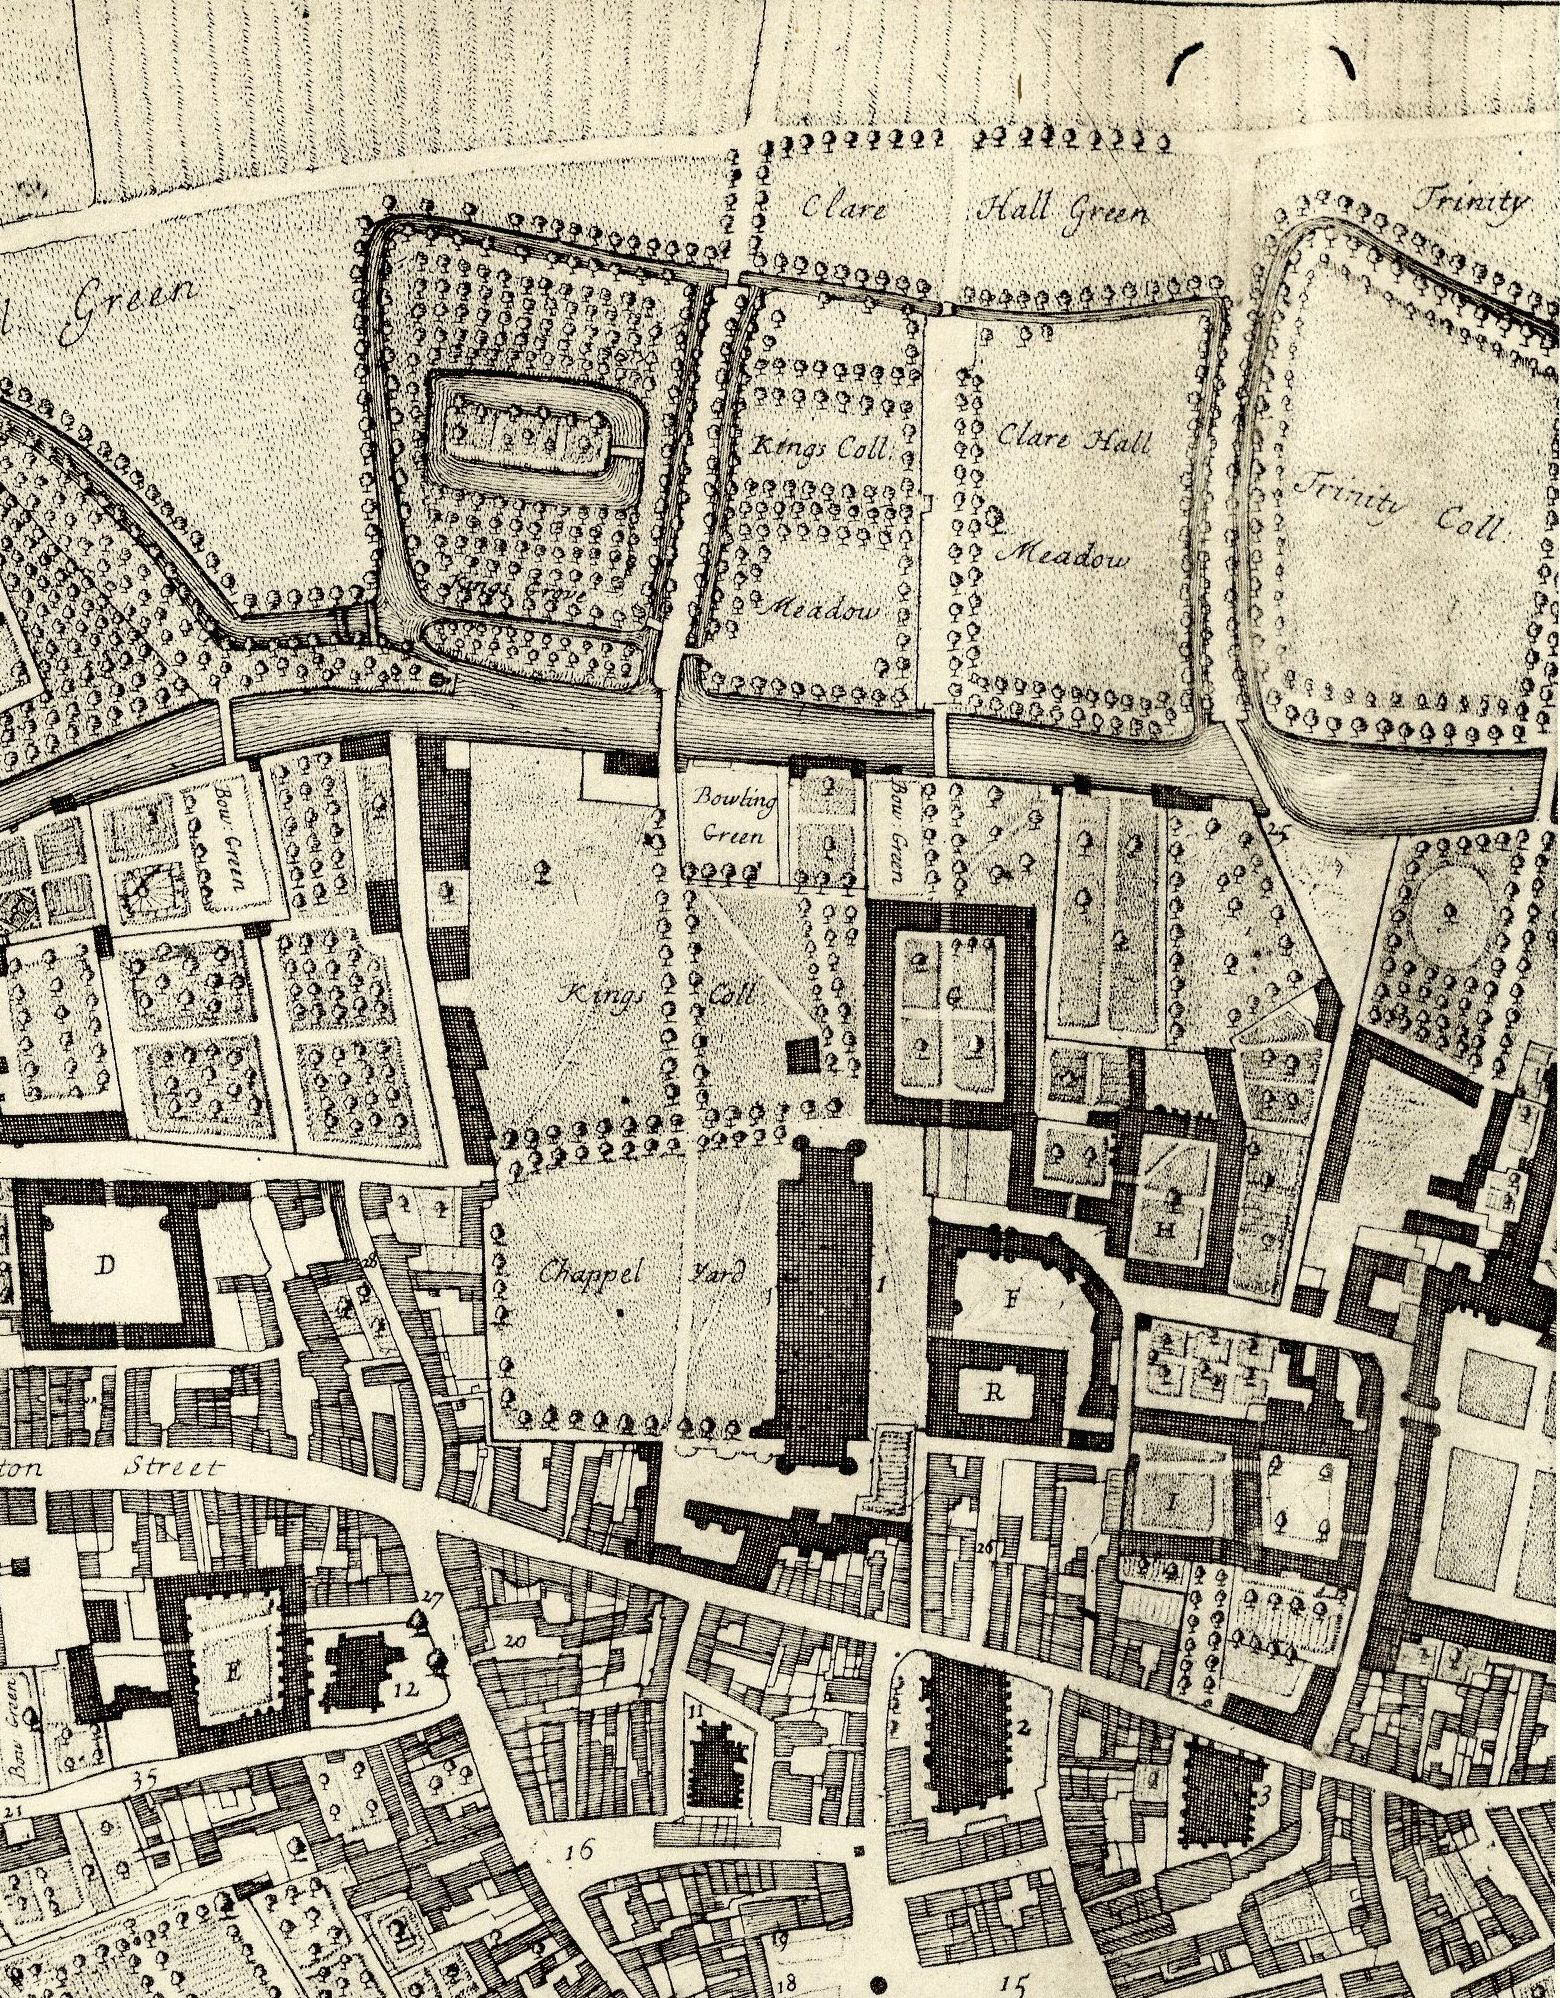 Loggan's map of the College site, 1688.